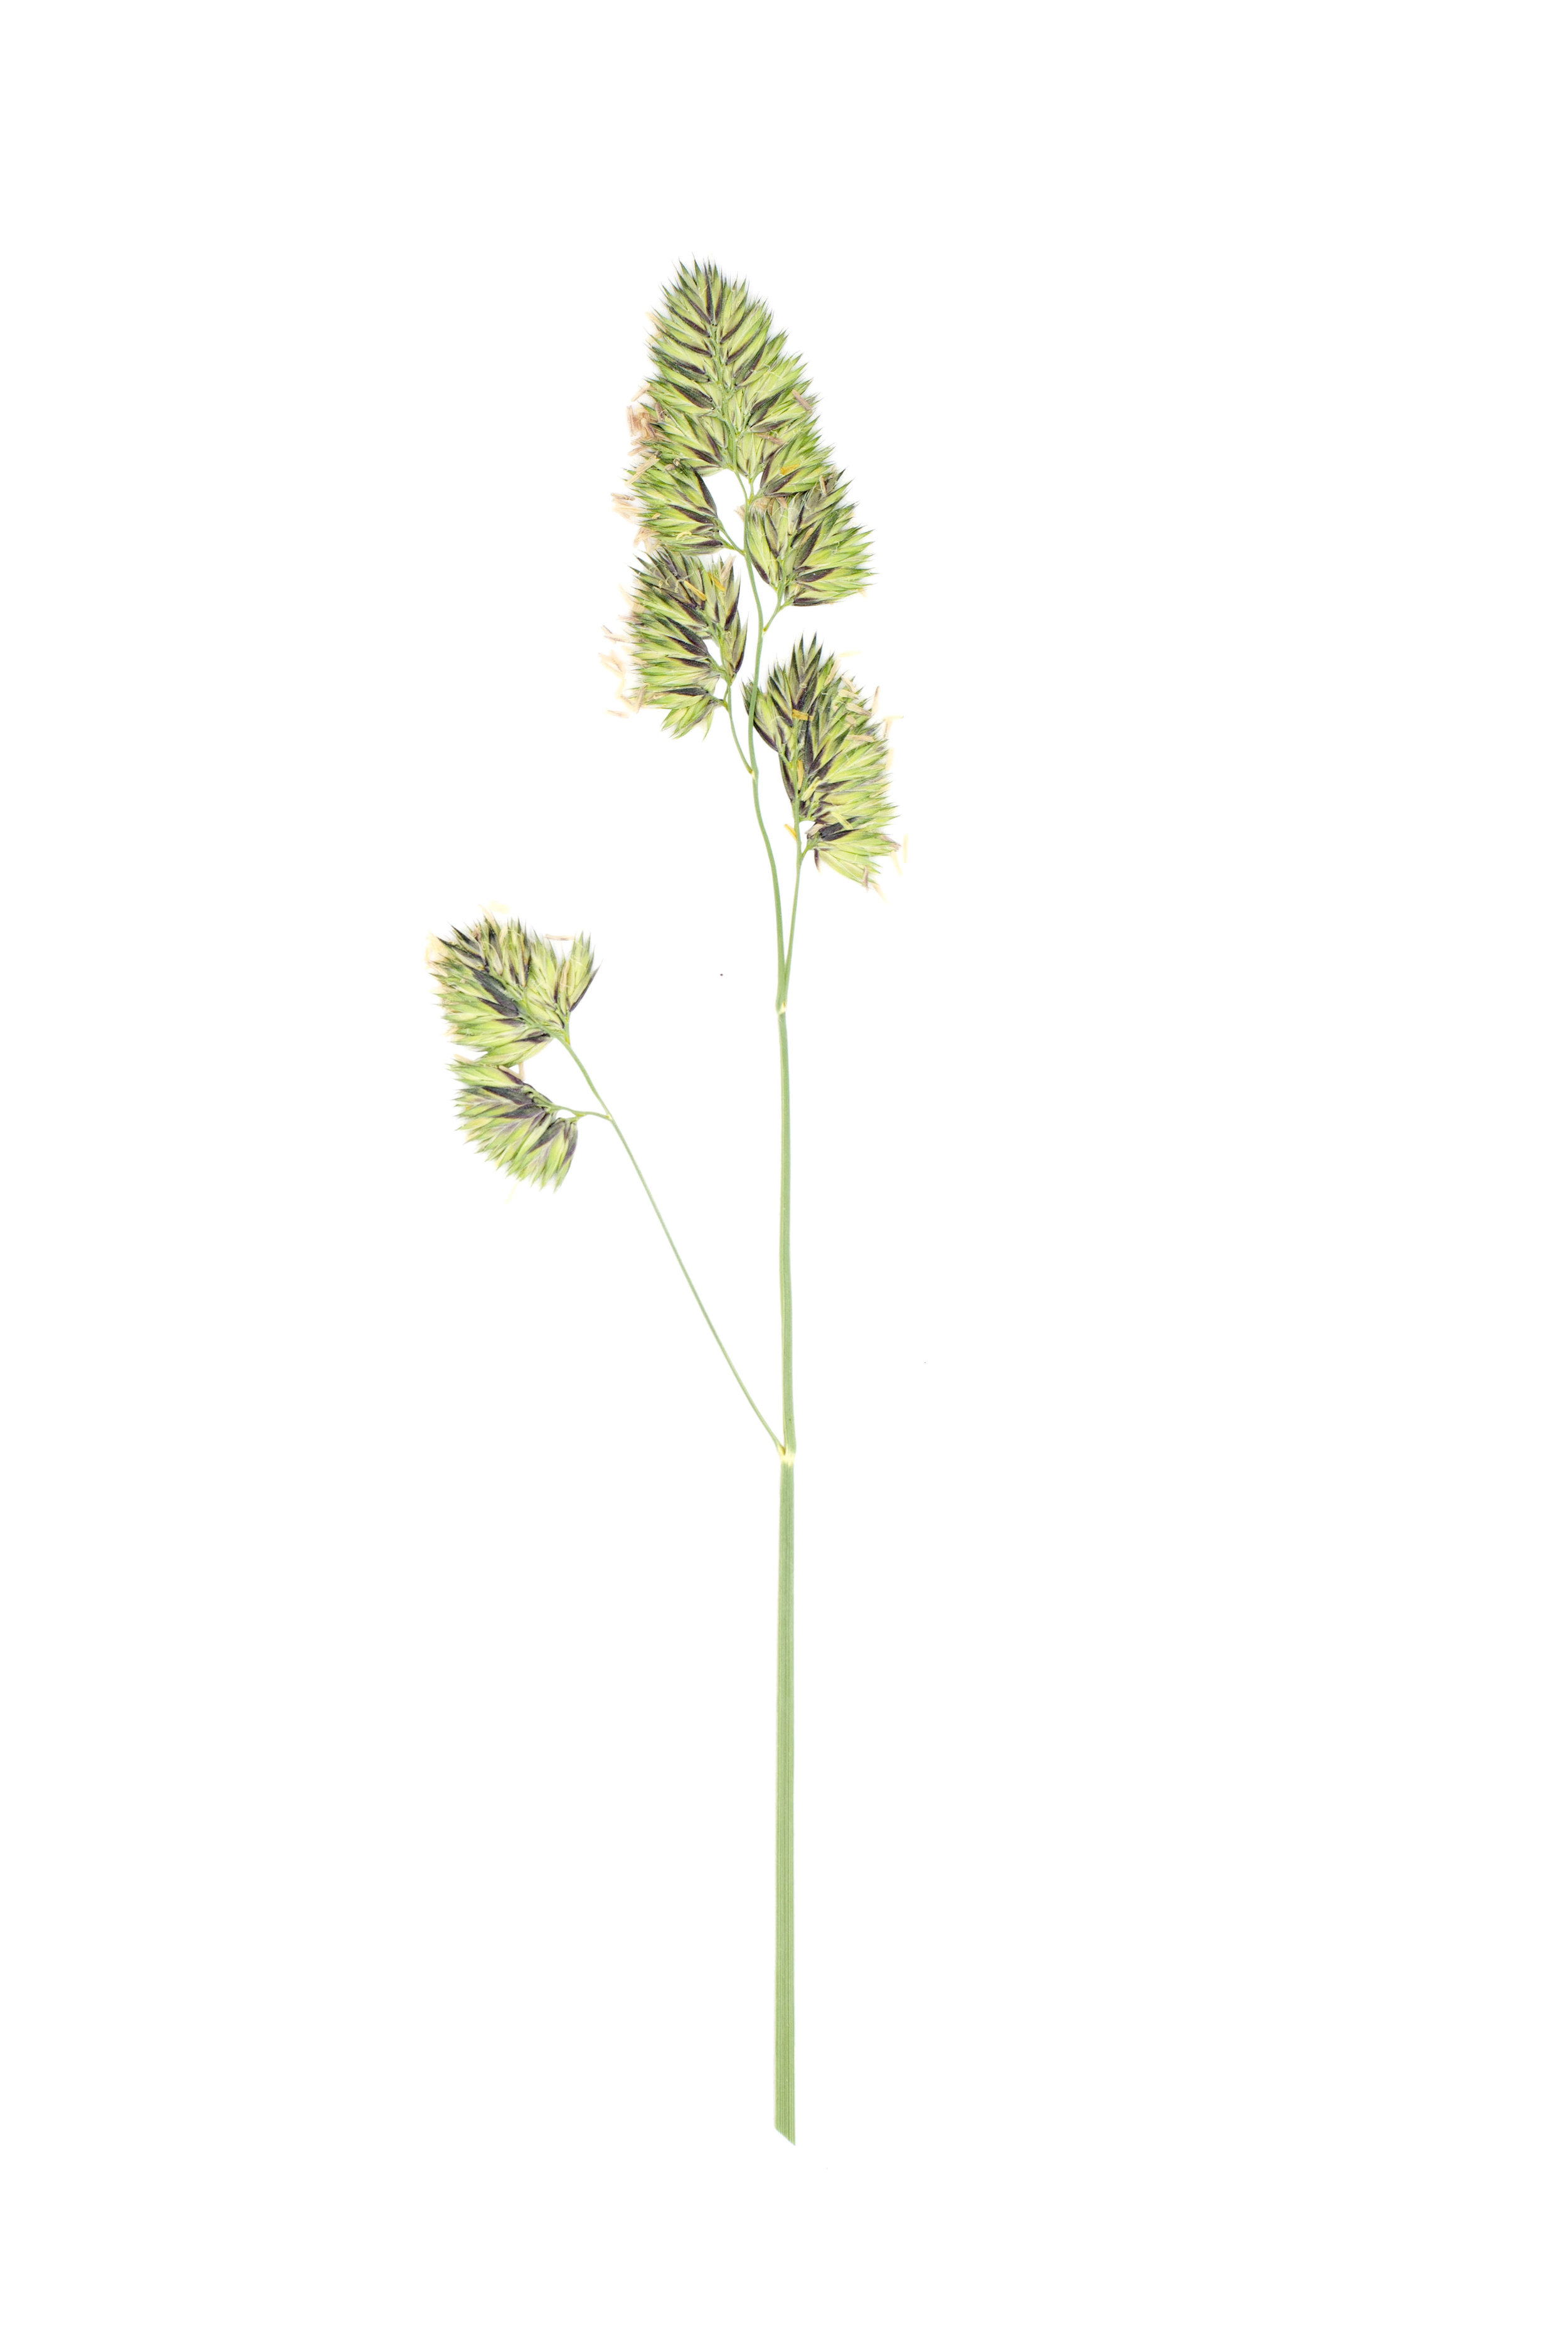 Cocksfoot or Orchardgrass / Dactylis glomerata